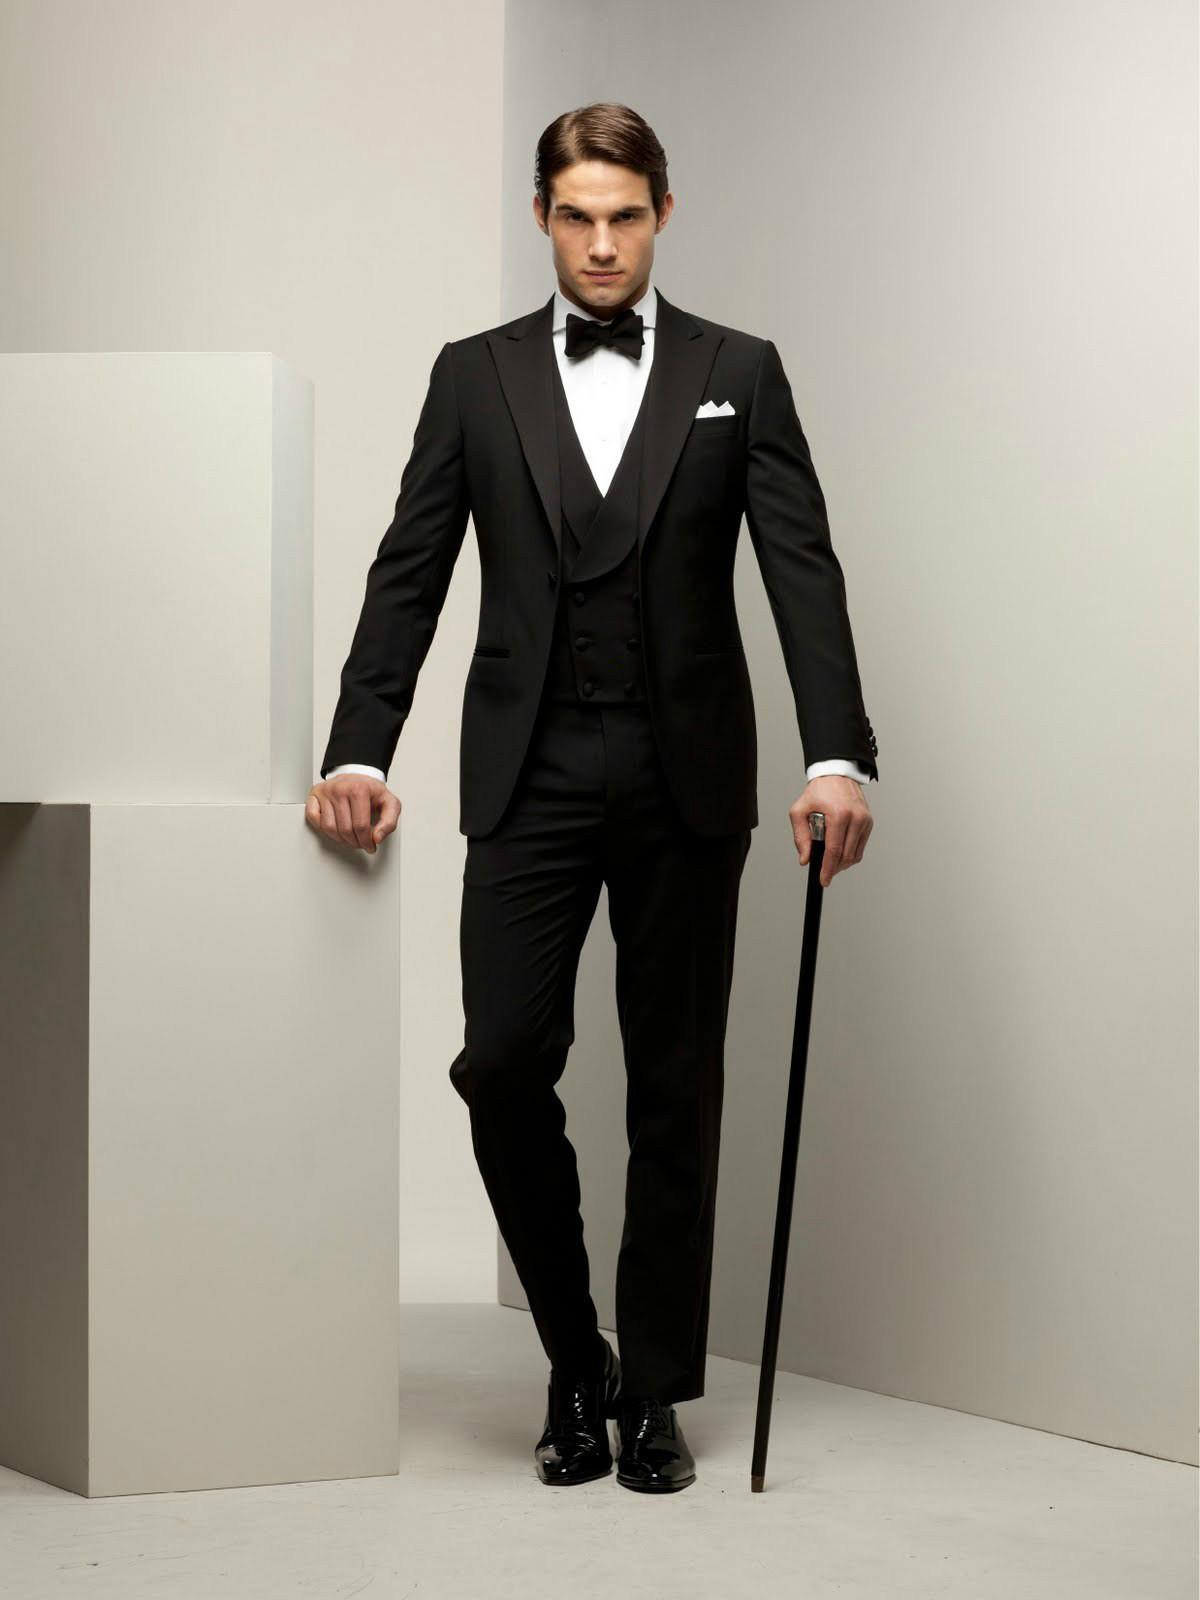 Mens Suit Black Suits Groom Tuxedo for Wedding Formal Wear Dress ...